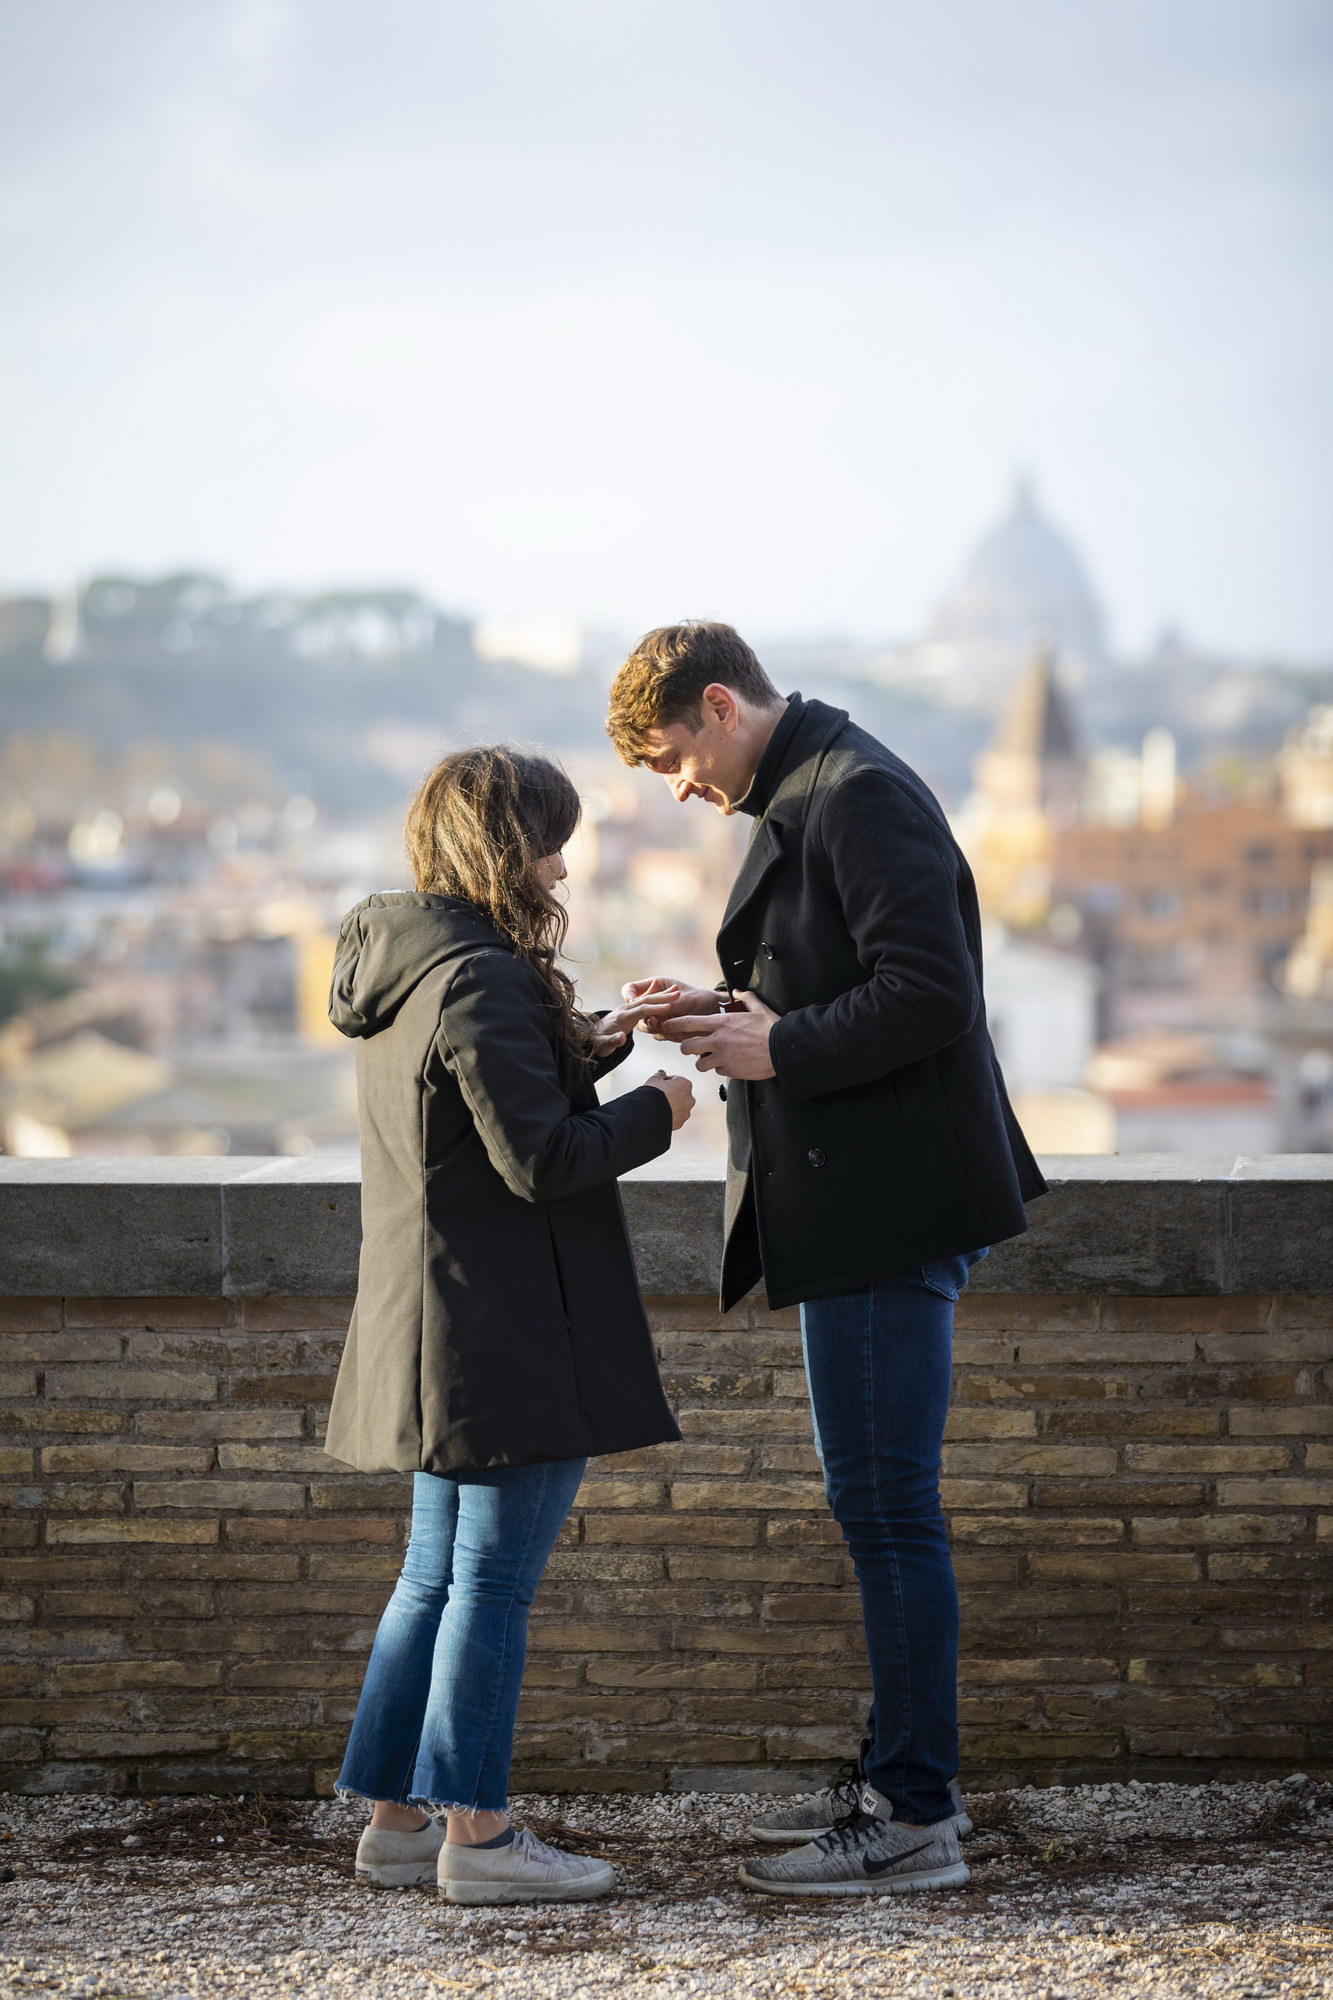 Christmas Engagement Proposal in Rome Andrea Matone03